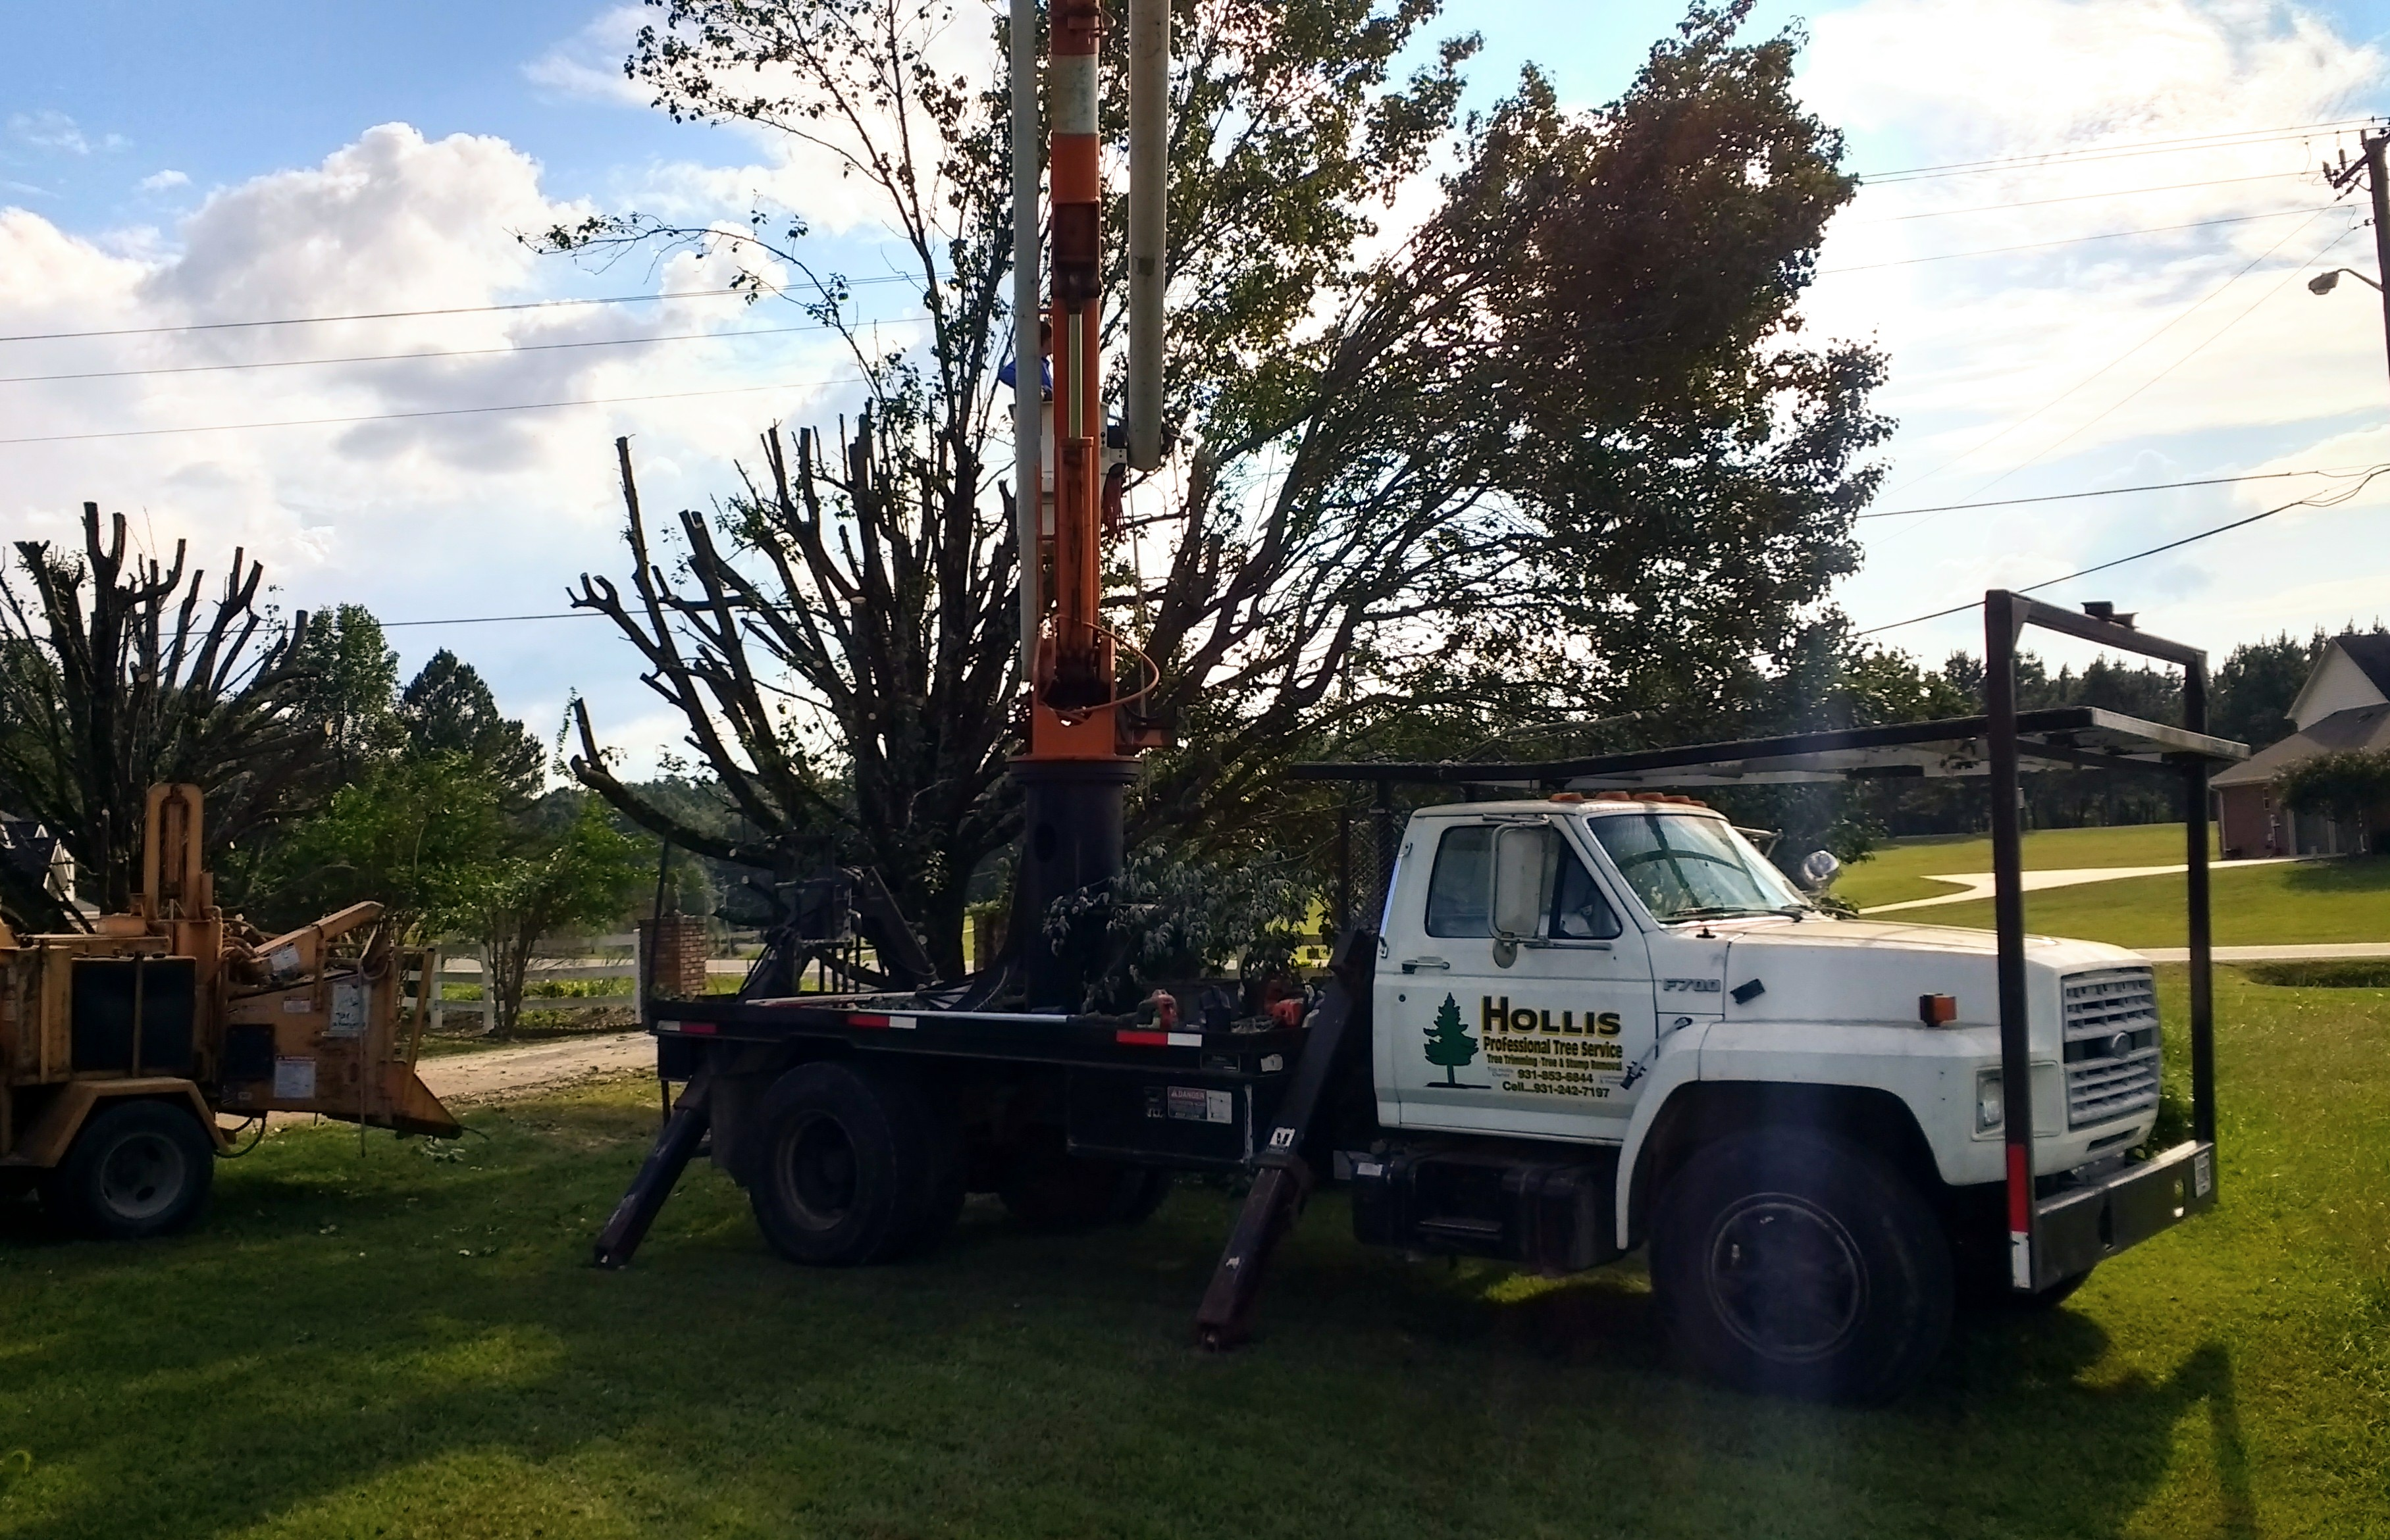 tree service, local tree service, tree removal, stump grinding, tree trimming